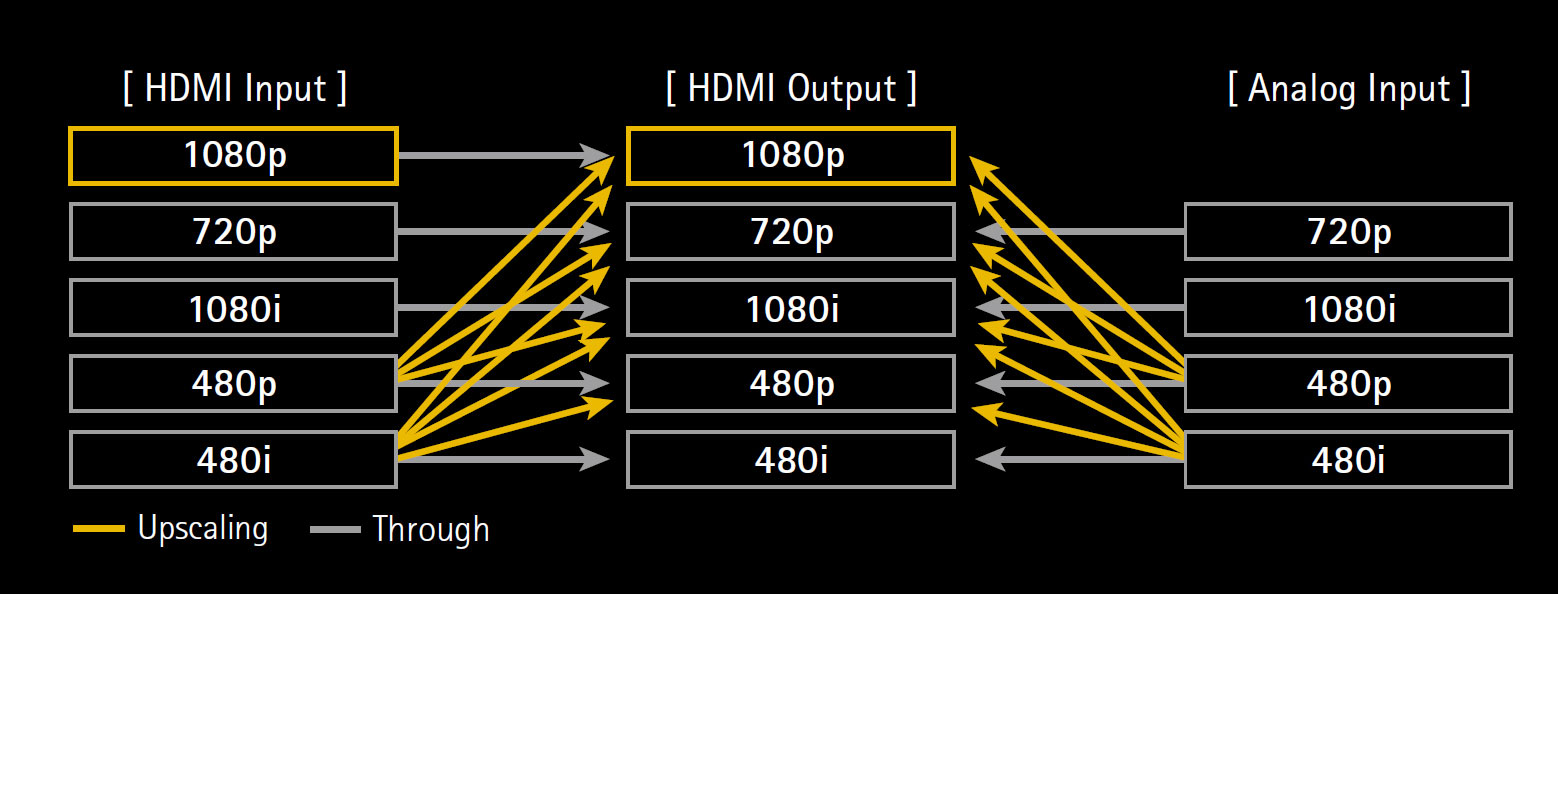 Analog and HDMI Video Upscaling to Full HD 1080p